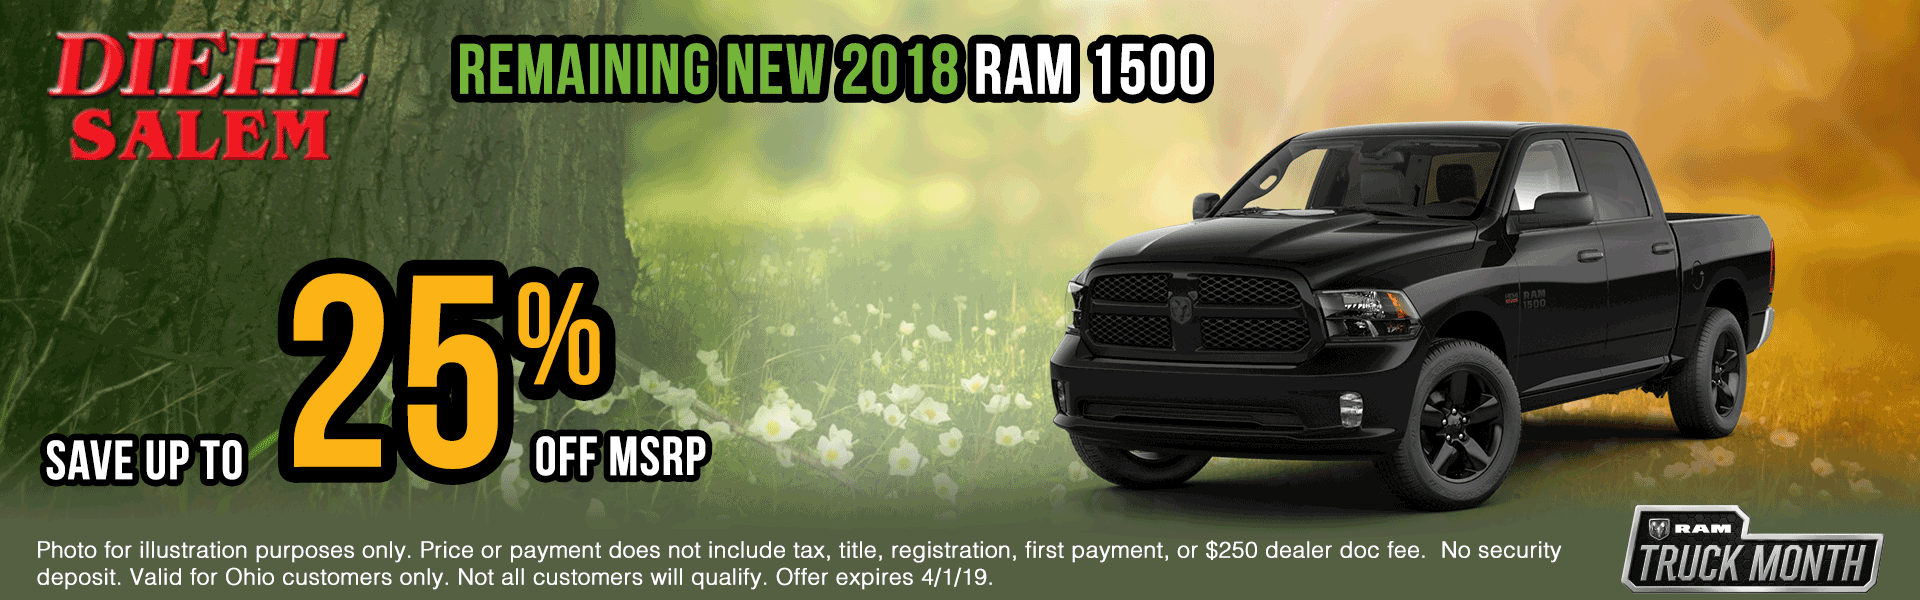 2018-ram Spring sales event ram truck month jeep specials Chrysler specials ram specials dodge specials mopar specials new vehicle specials Diehl automotive Diehl Salem Diehl of Salem specials Ohio specials